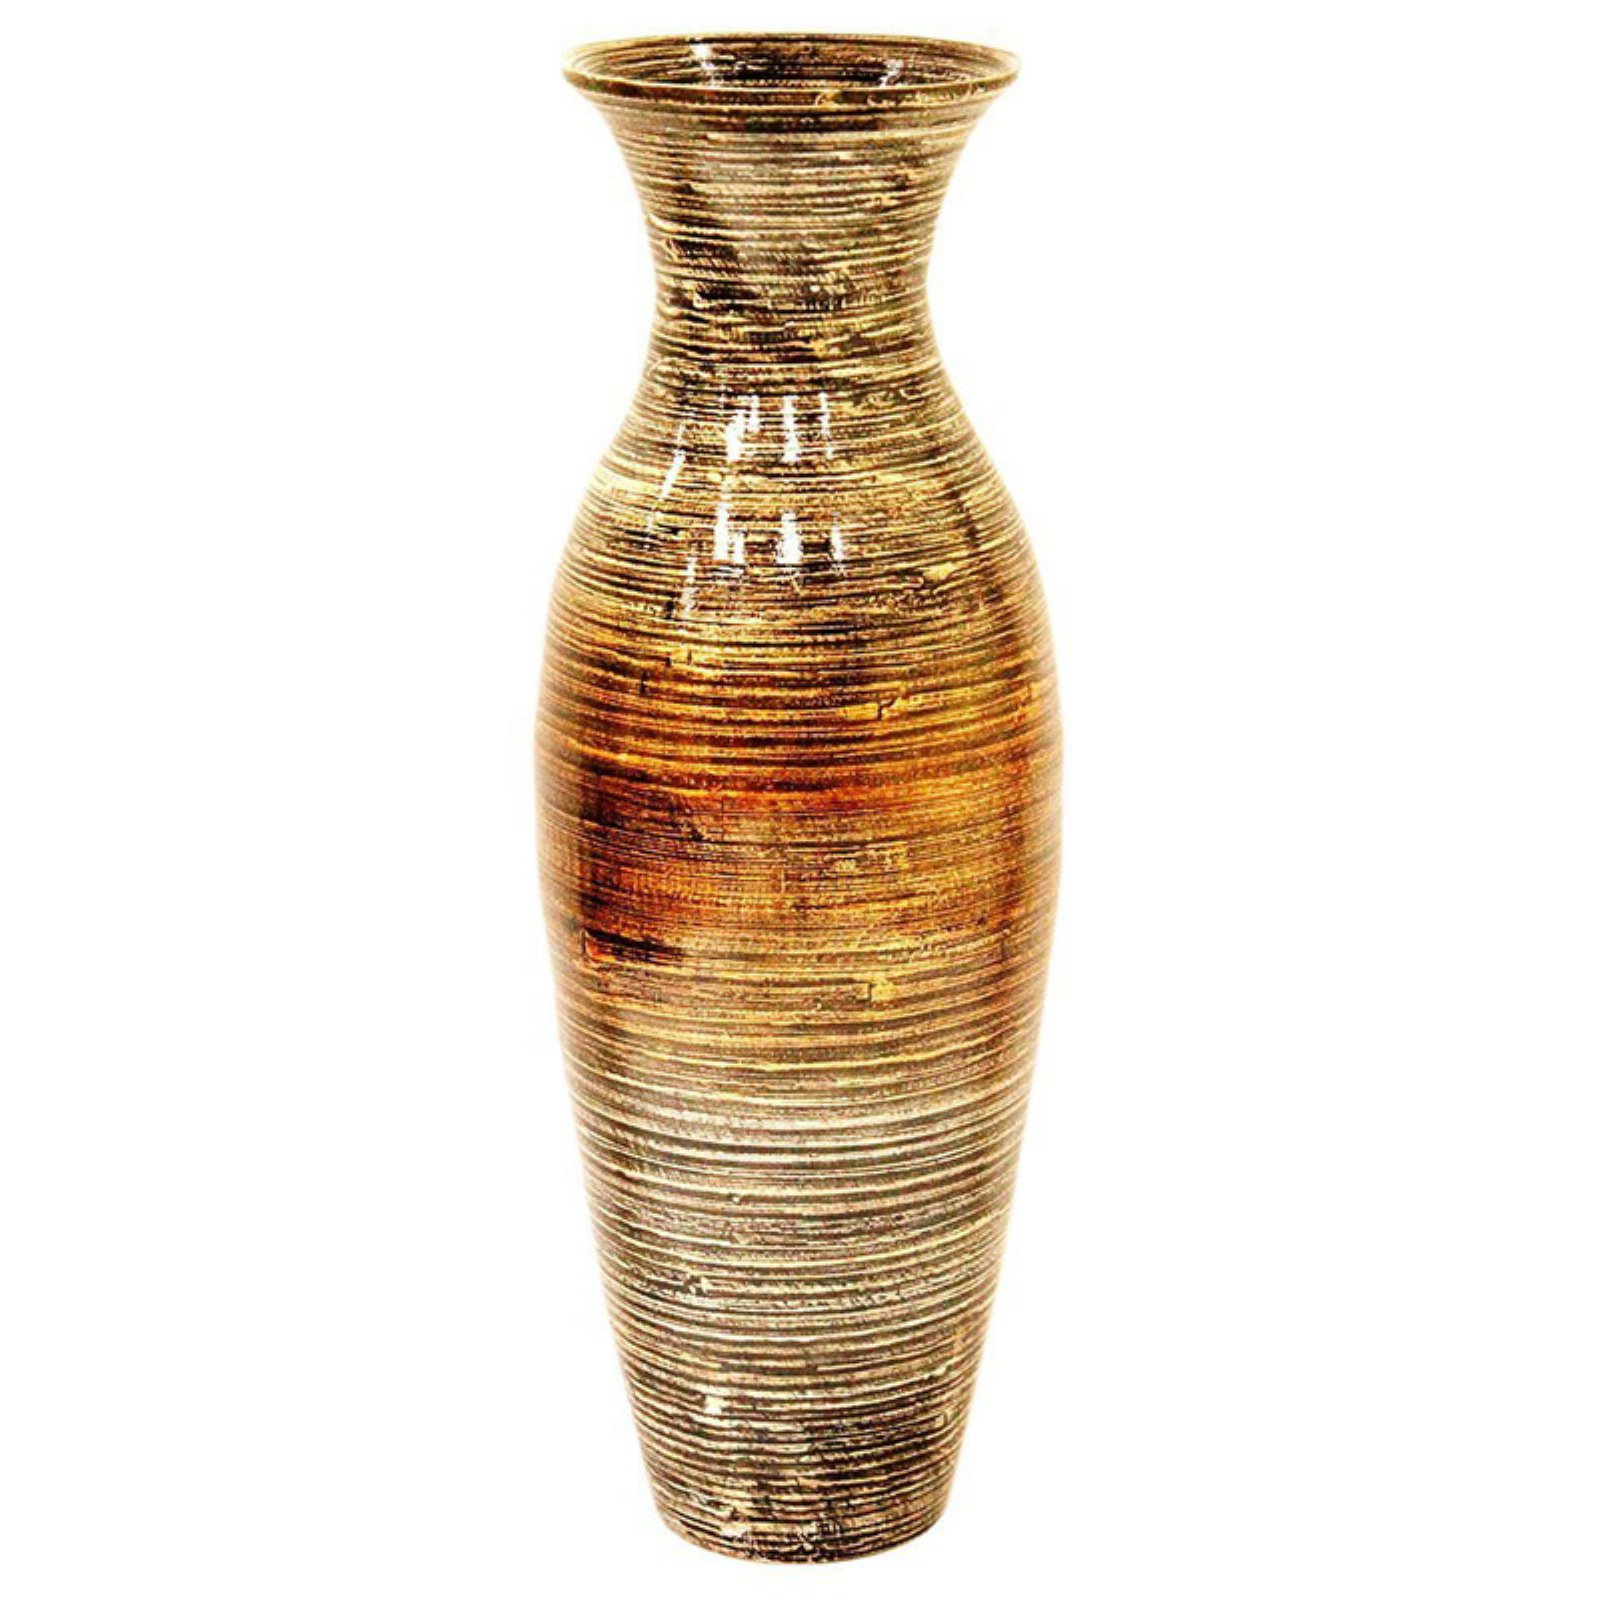 Heather Ann Creations Spun Bamboo Decorative Floor or Table Accent Vase